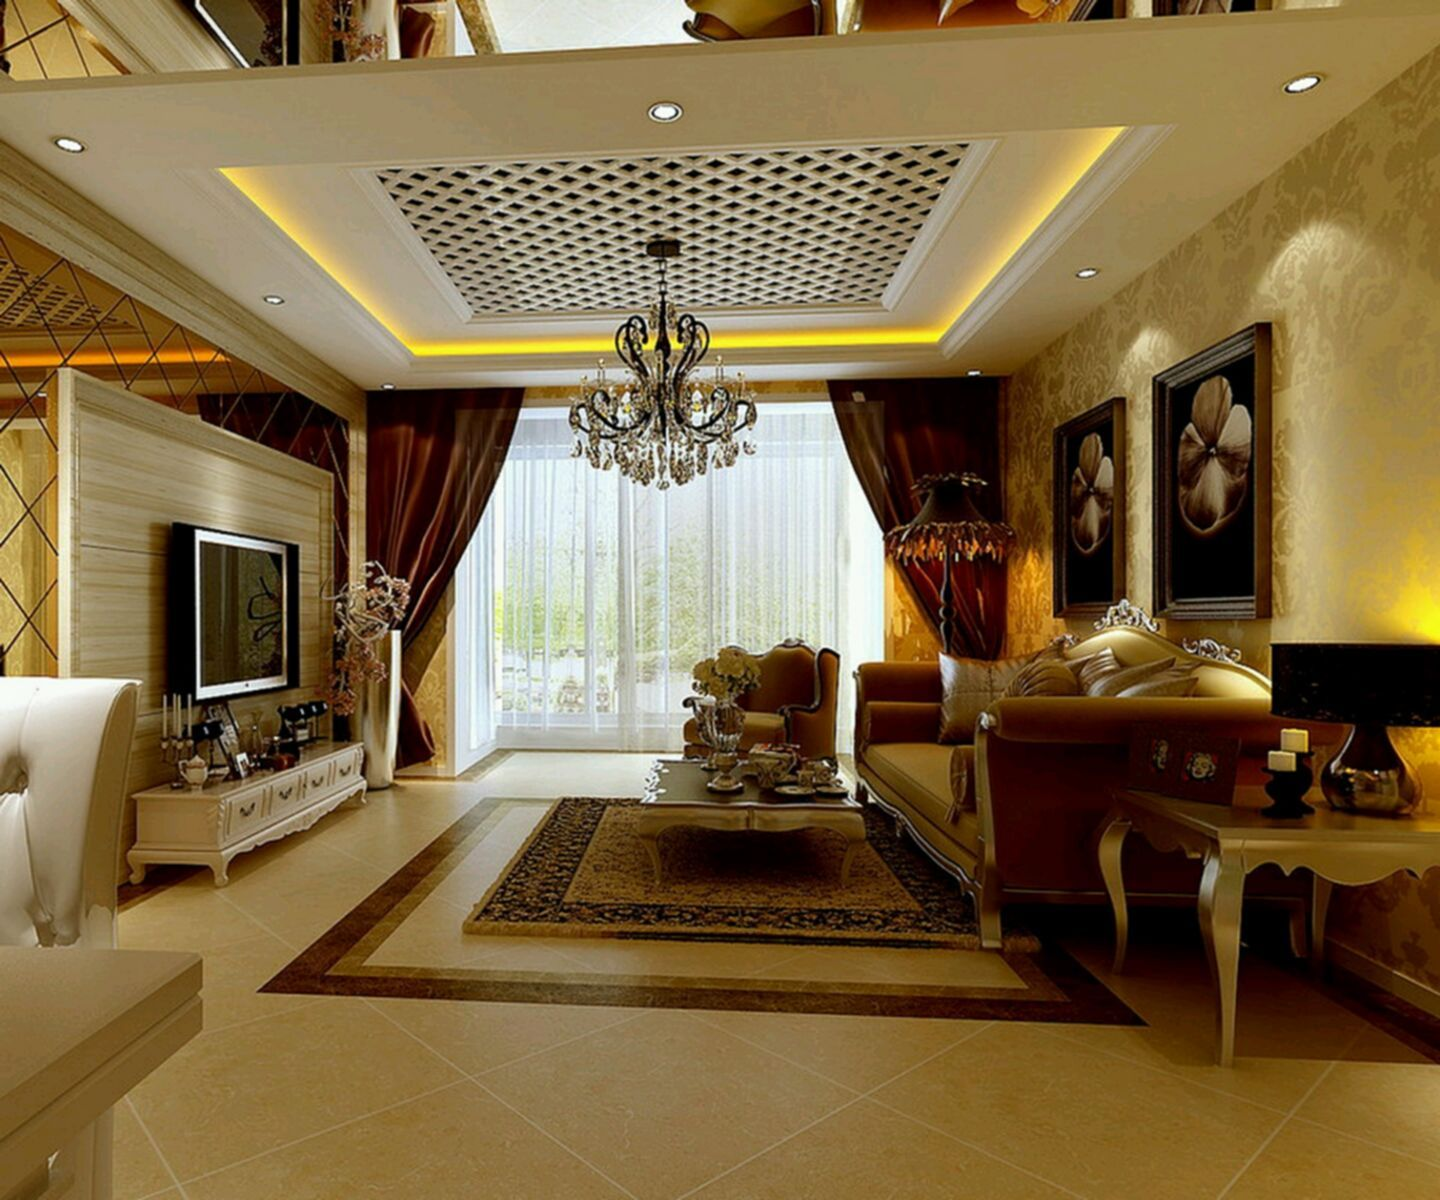 20 Luxury Living Room Design Ideas That Your Guests Wil